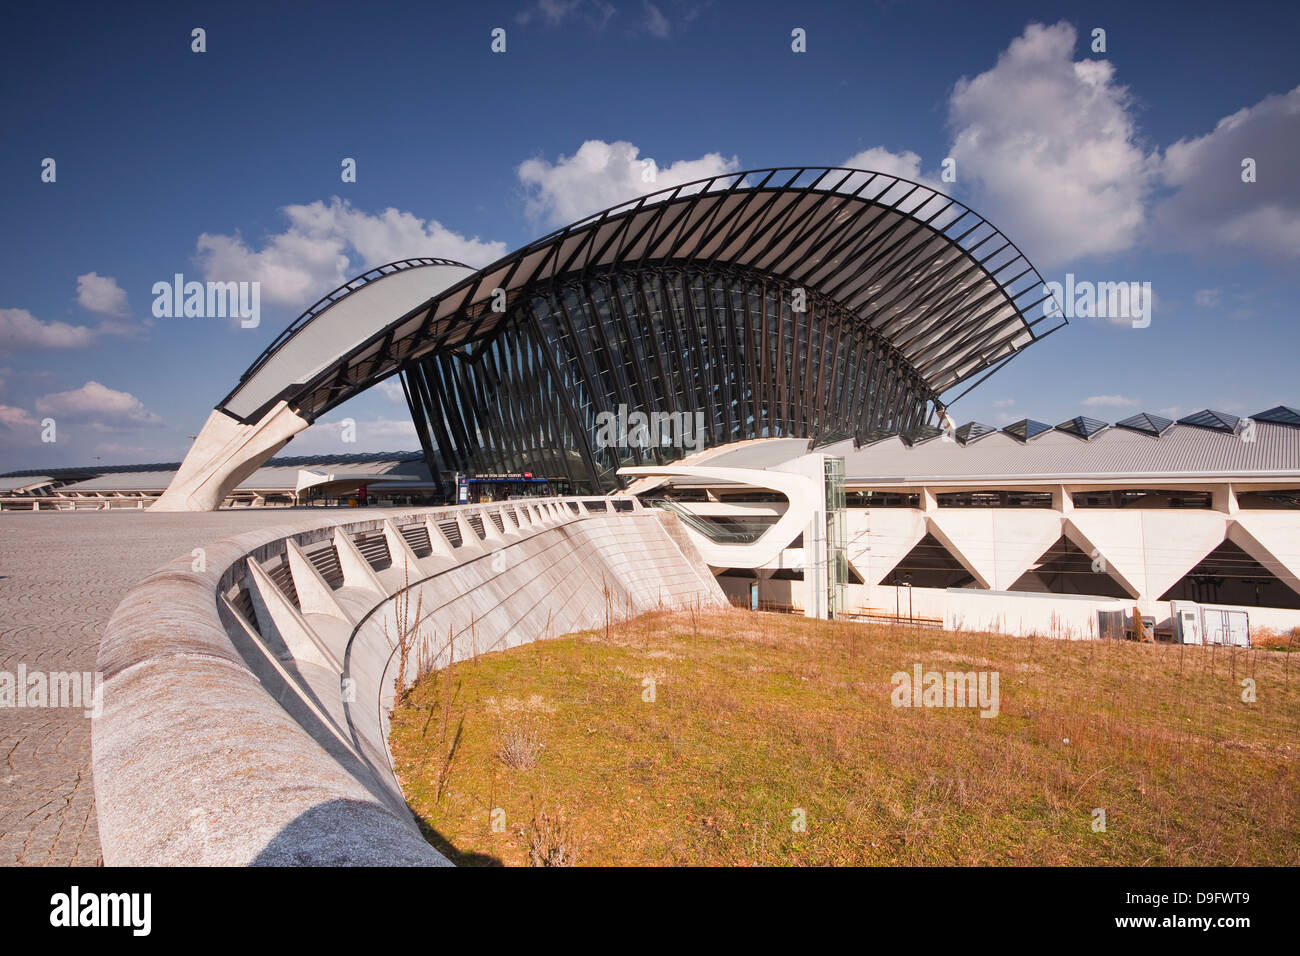 The TGV railway station of Lyon Saint Exupery, which serves the airport, Lyon, Rhone Alpes, France - Stock Image